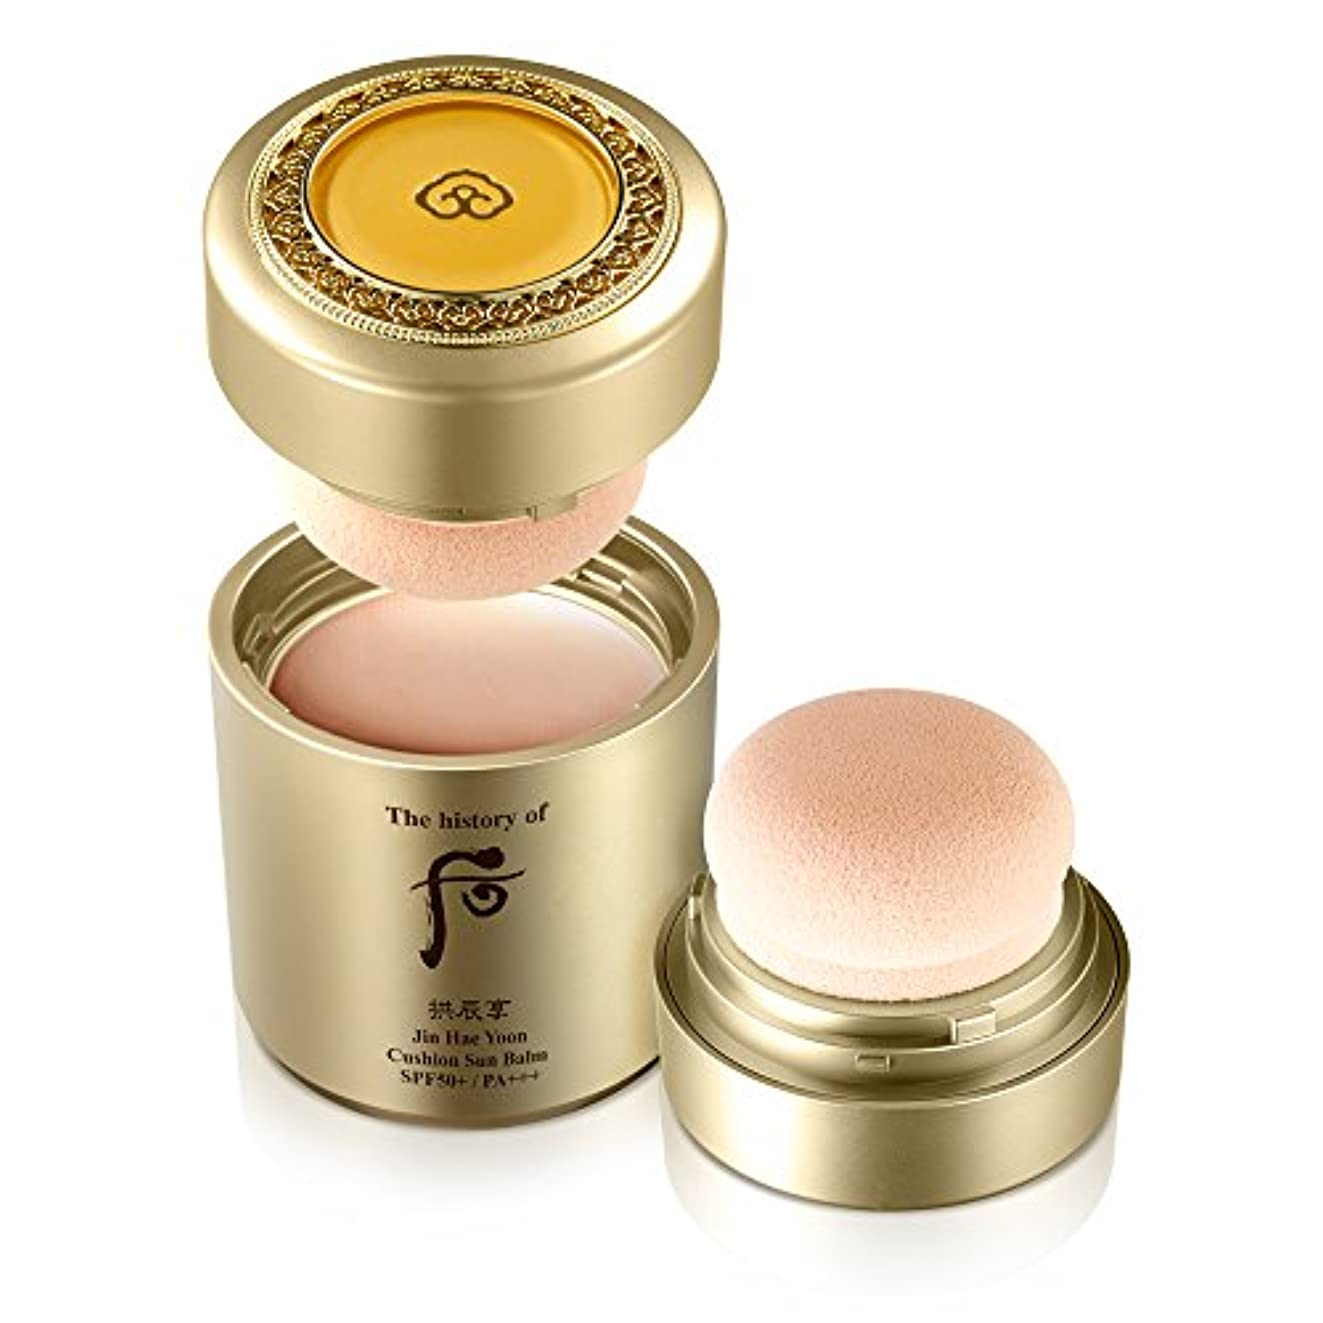 同封するみがきます添付The History of Whoo Gongjinhyang Jinhaeyoon All-in-one Cushion Sun Balm 13g[並行輸入品]